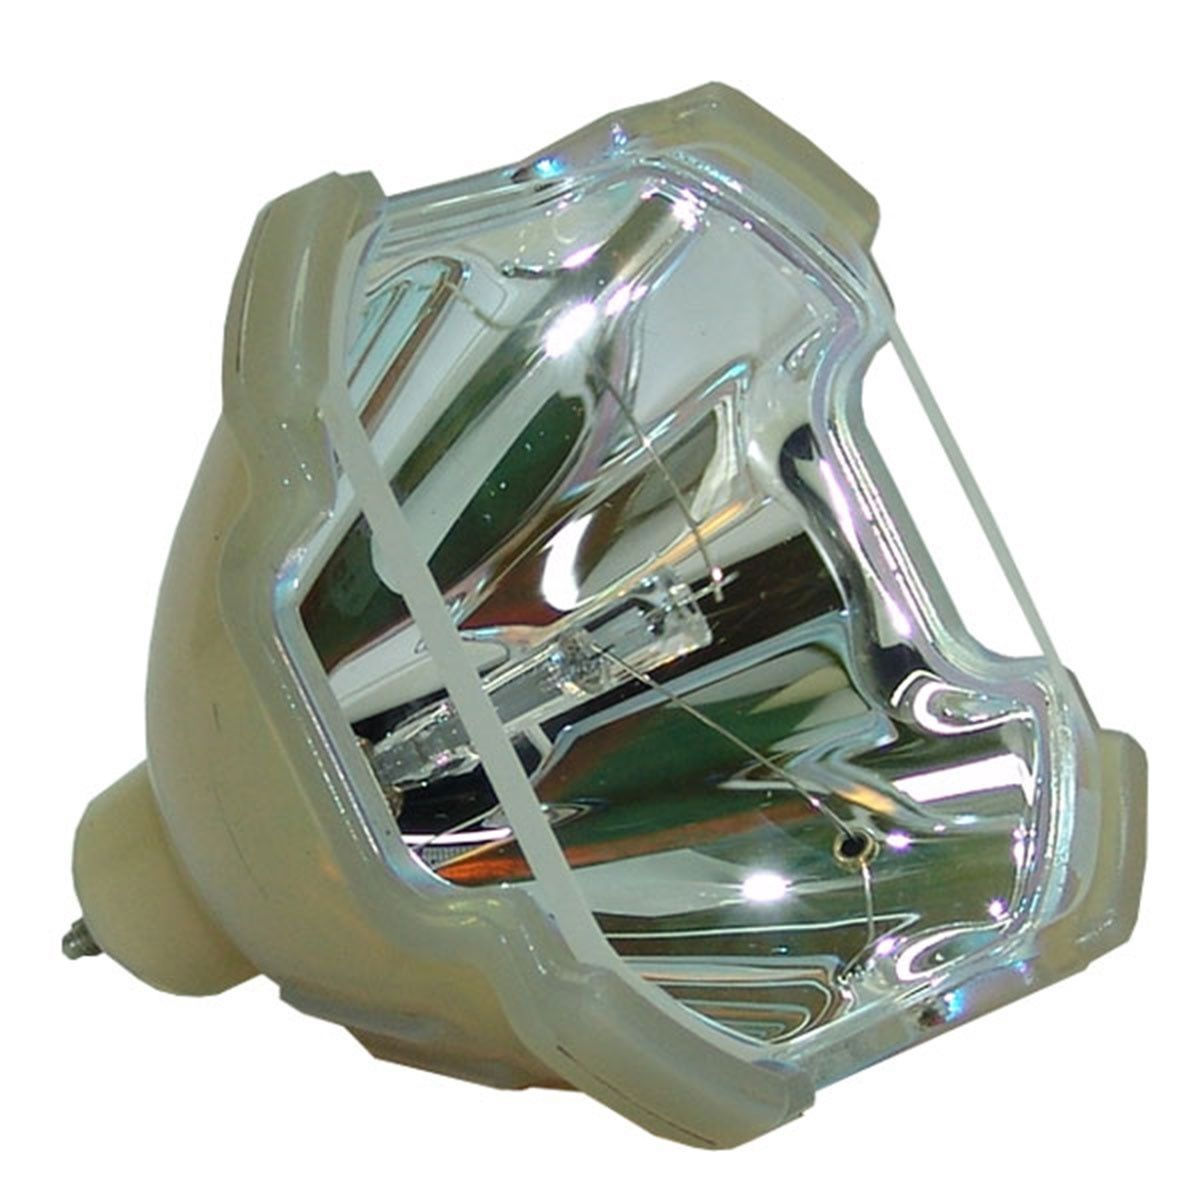 Compatible Bare Bulb LV-LP13 7670A001 for Canon LV-7545 Projector Lamp Bulb without housing compatible bare bulb lv lp30 2481b001 for canon lv 7365 projector lamp bulb without housing